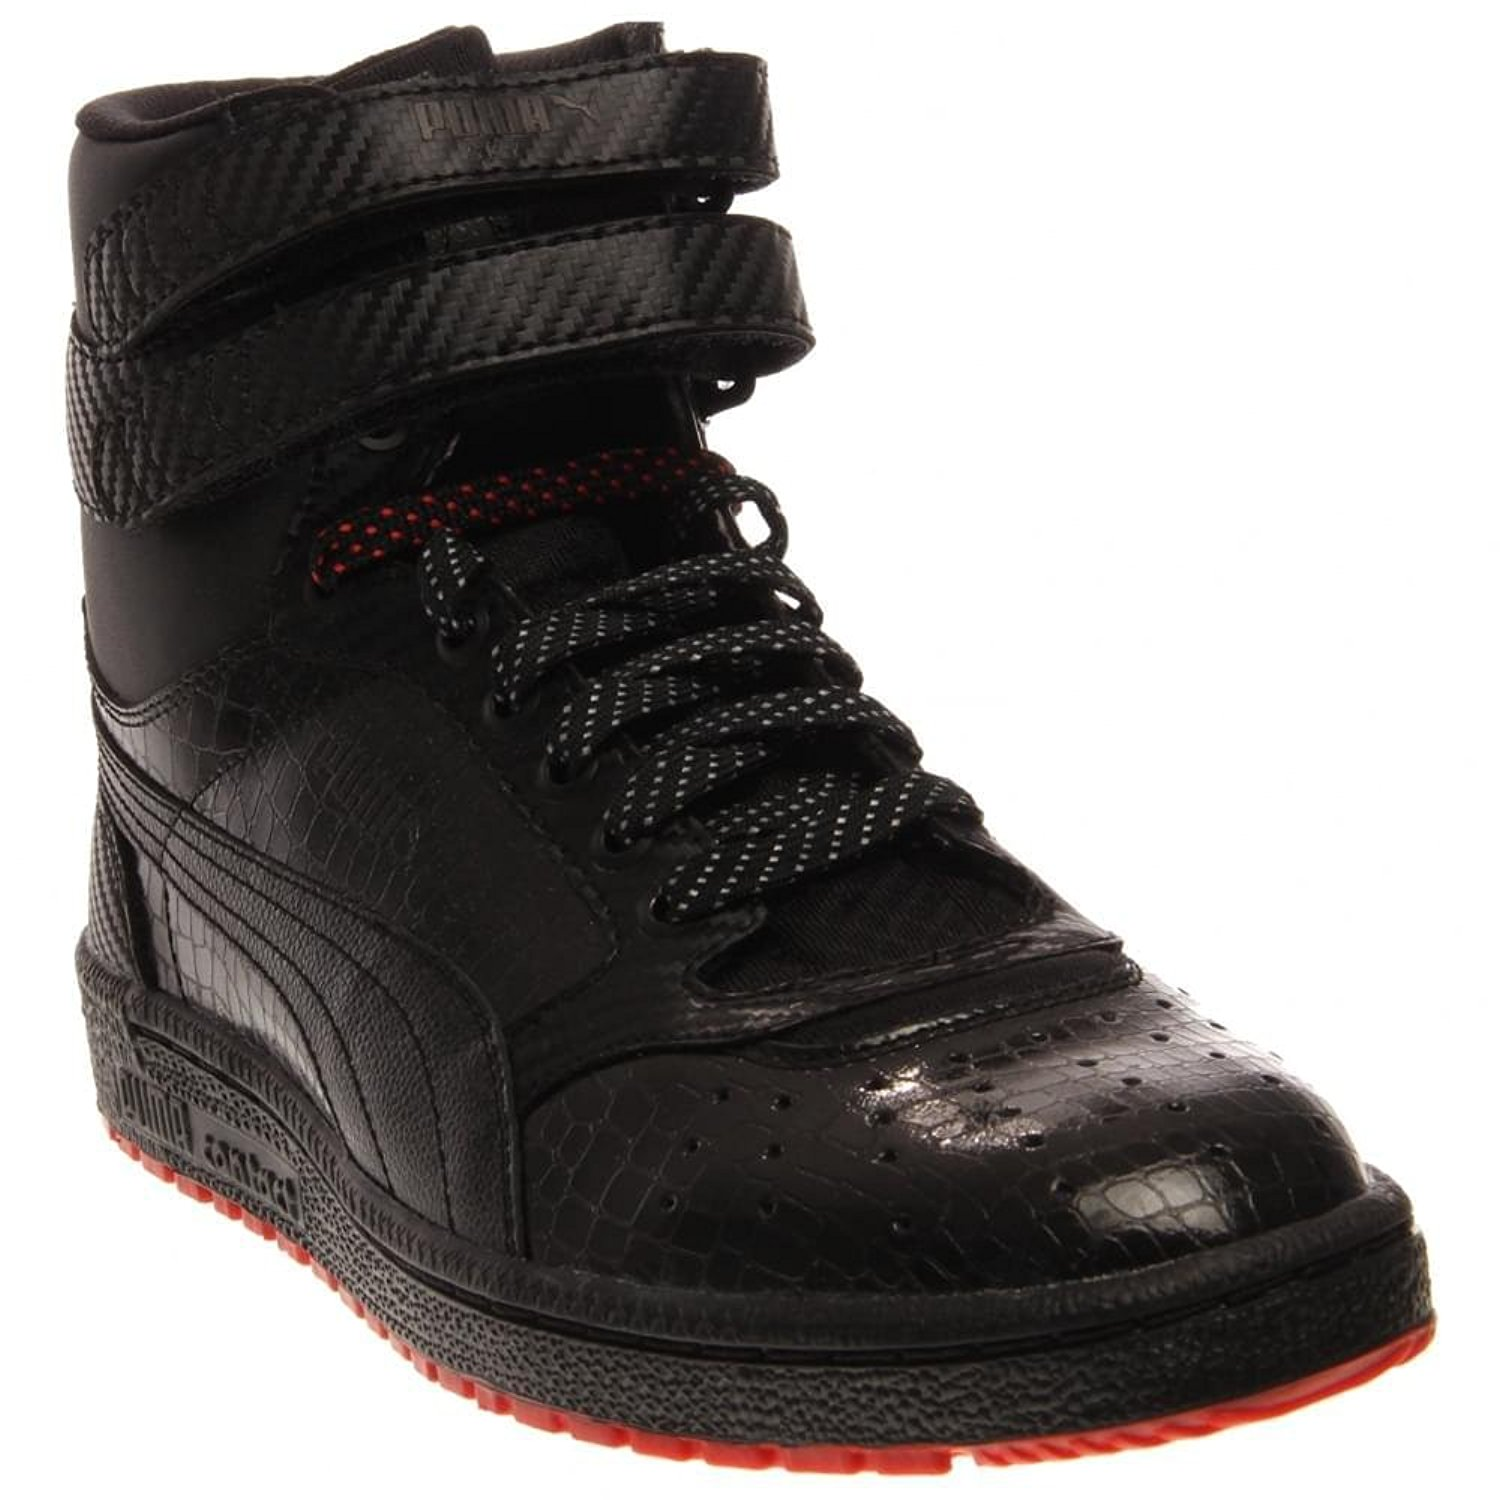 Buy Puma Sky II Hi Carbon Men's Basketball Shoes in